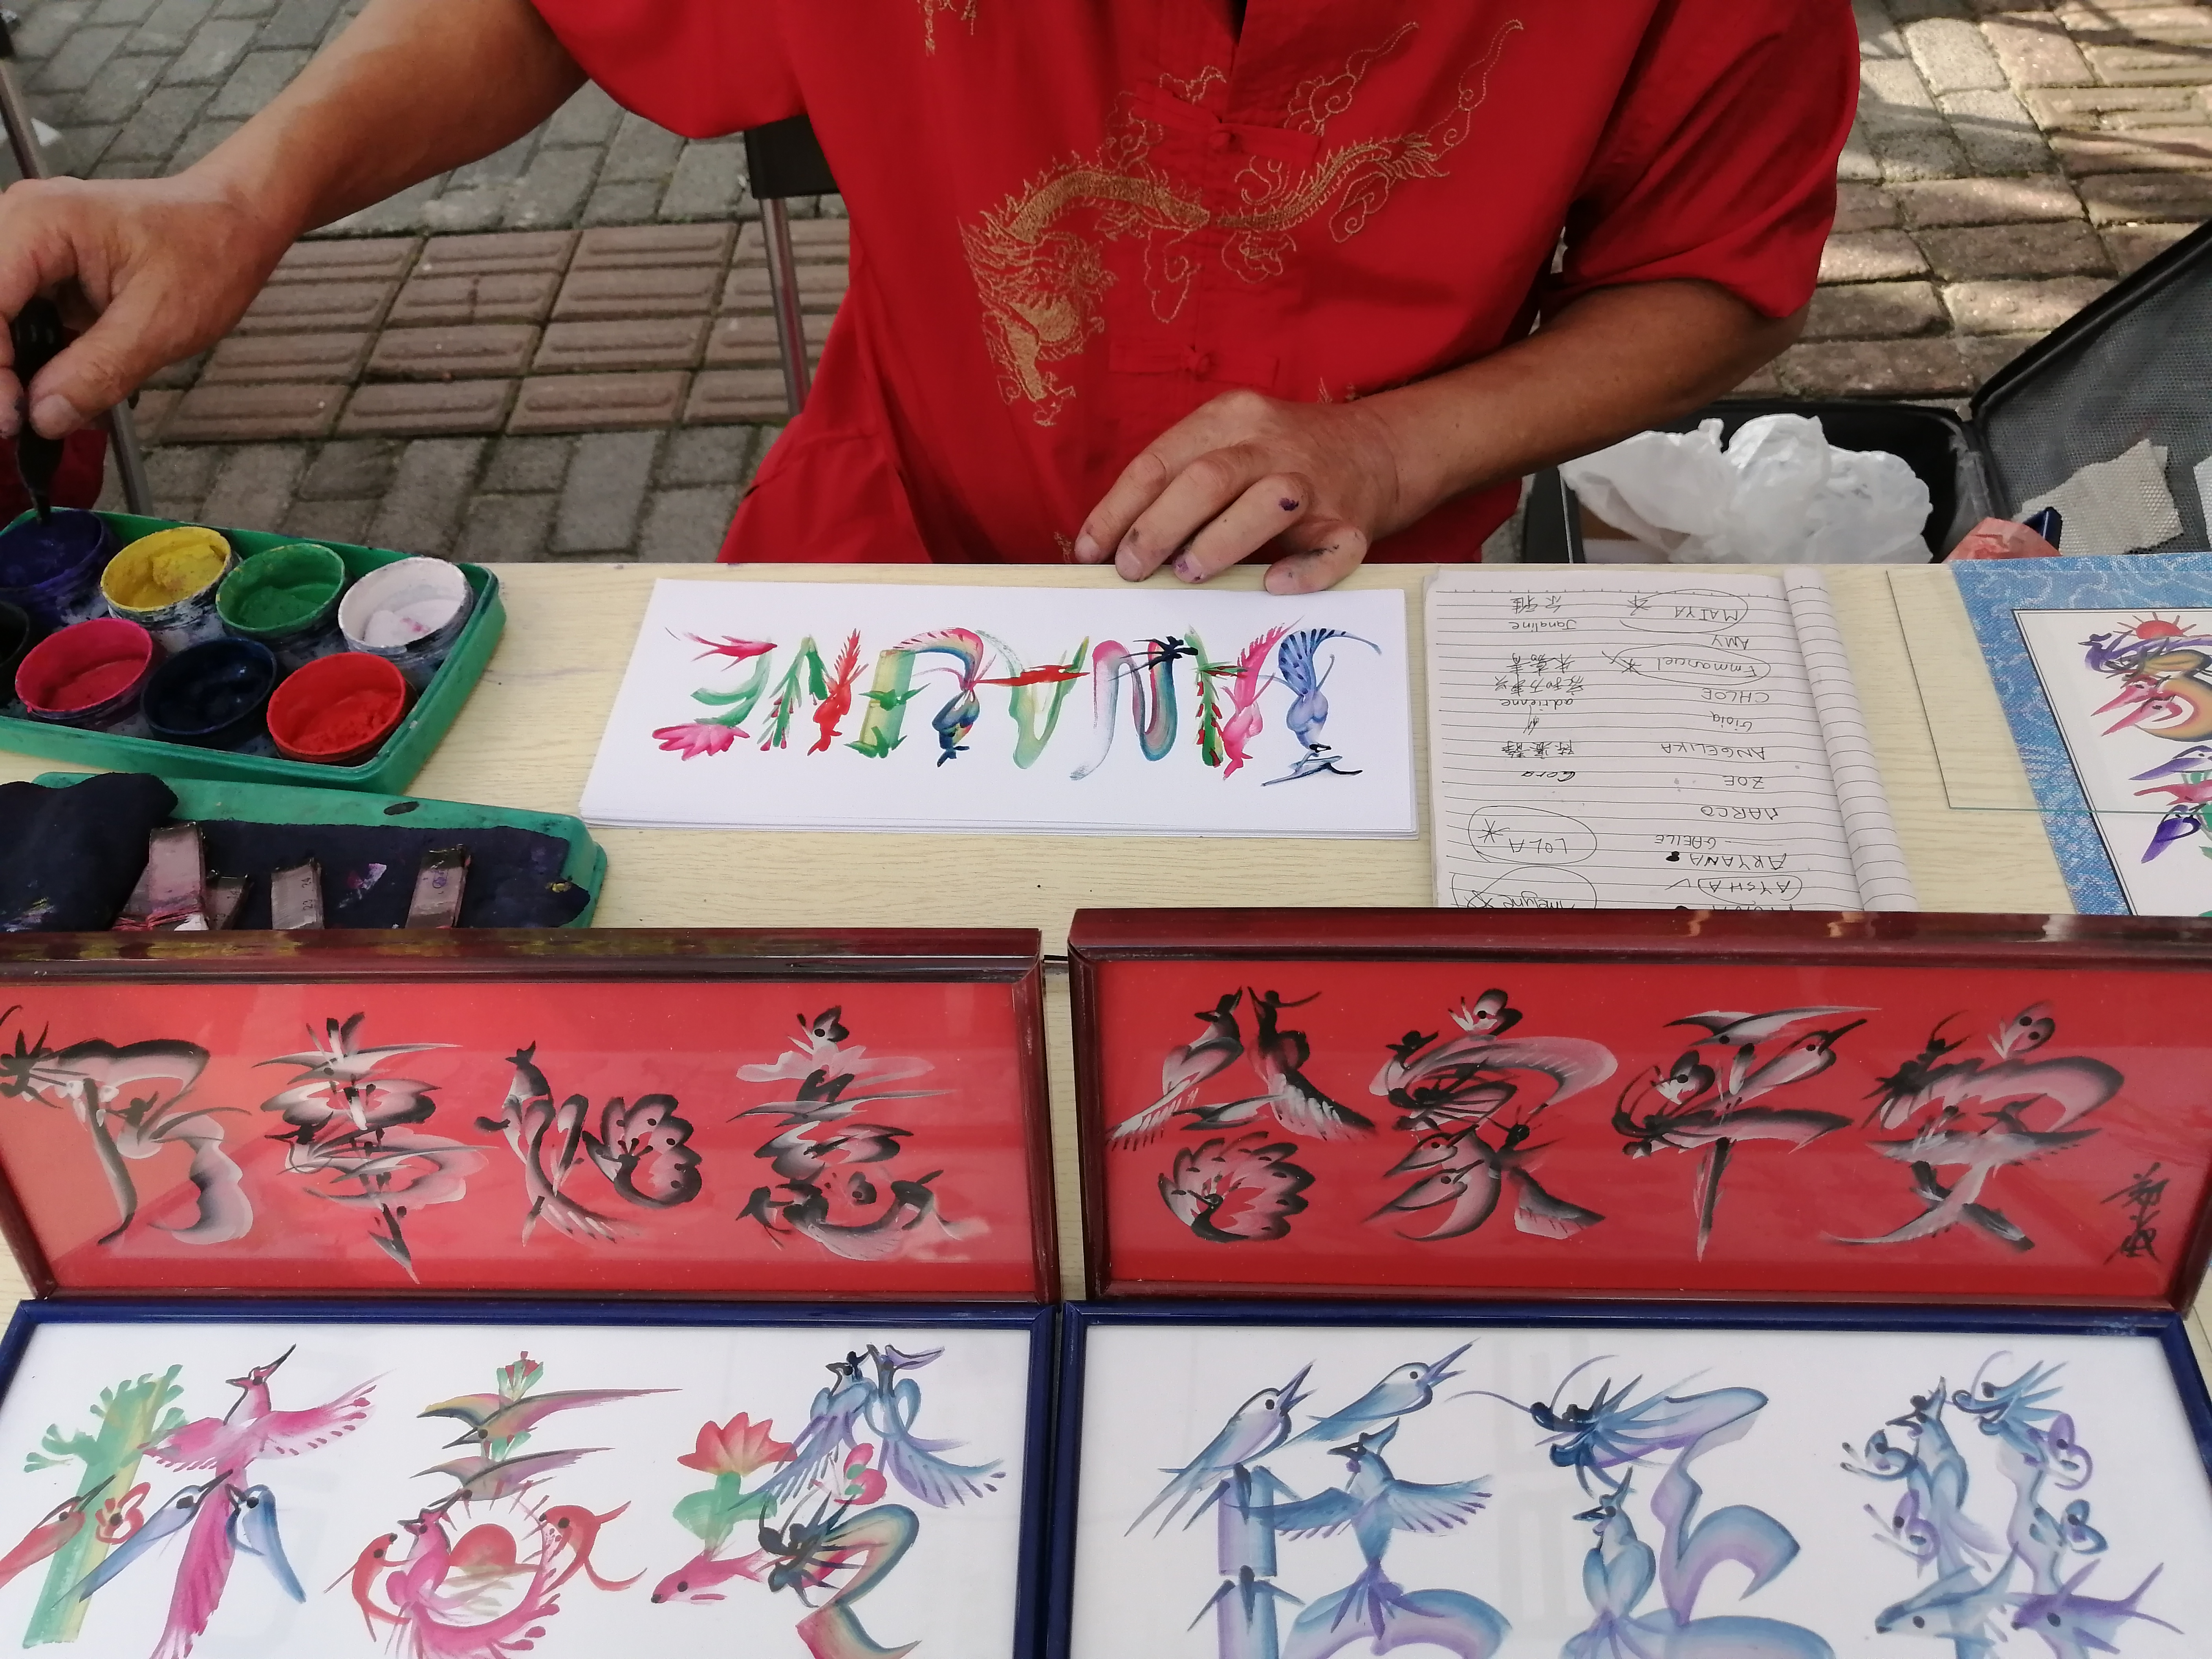 Chinese Calligraphy artist at work